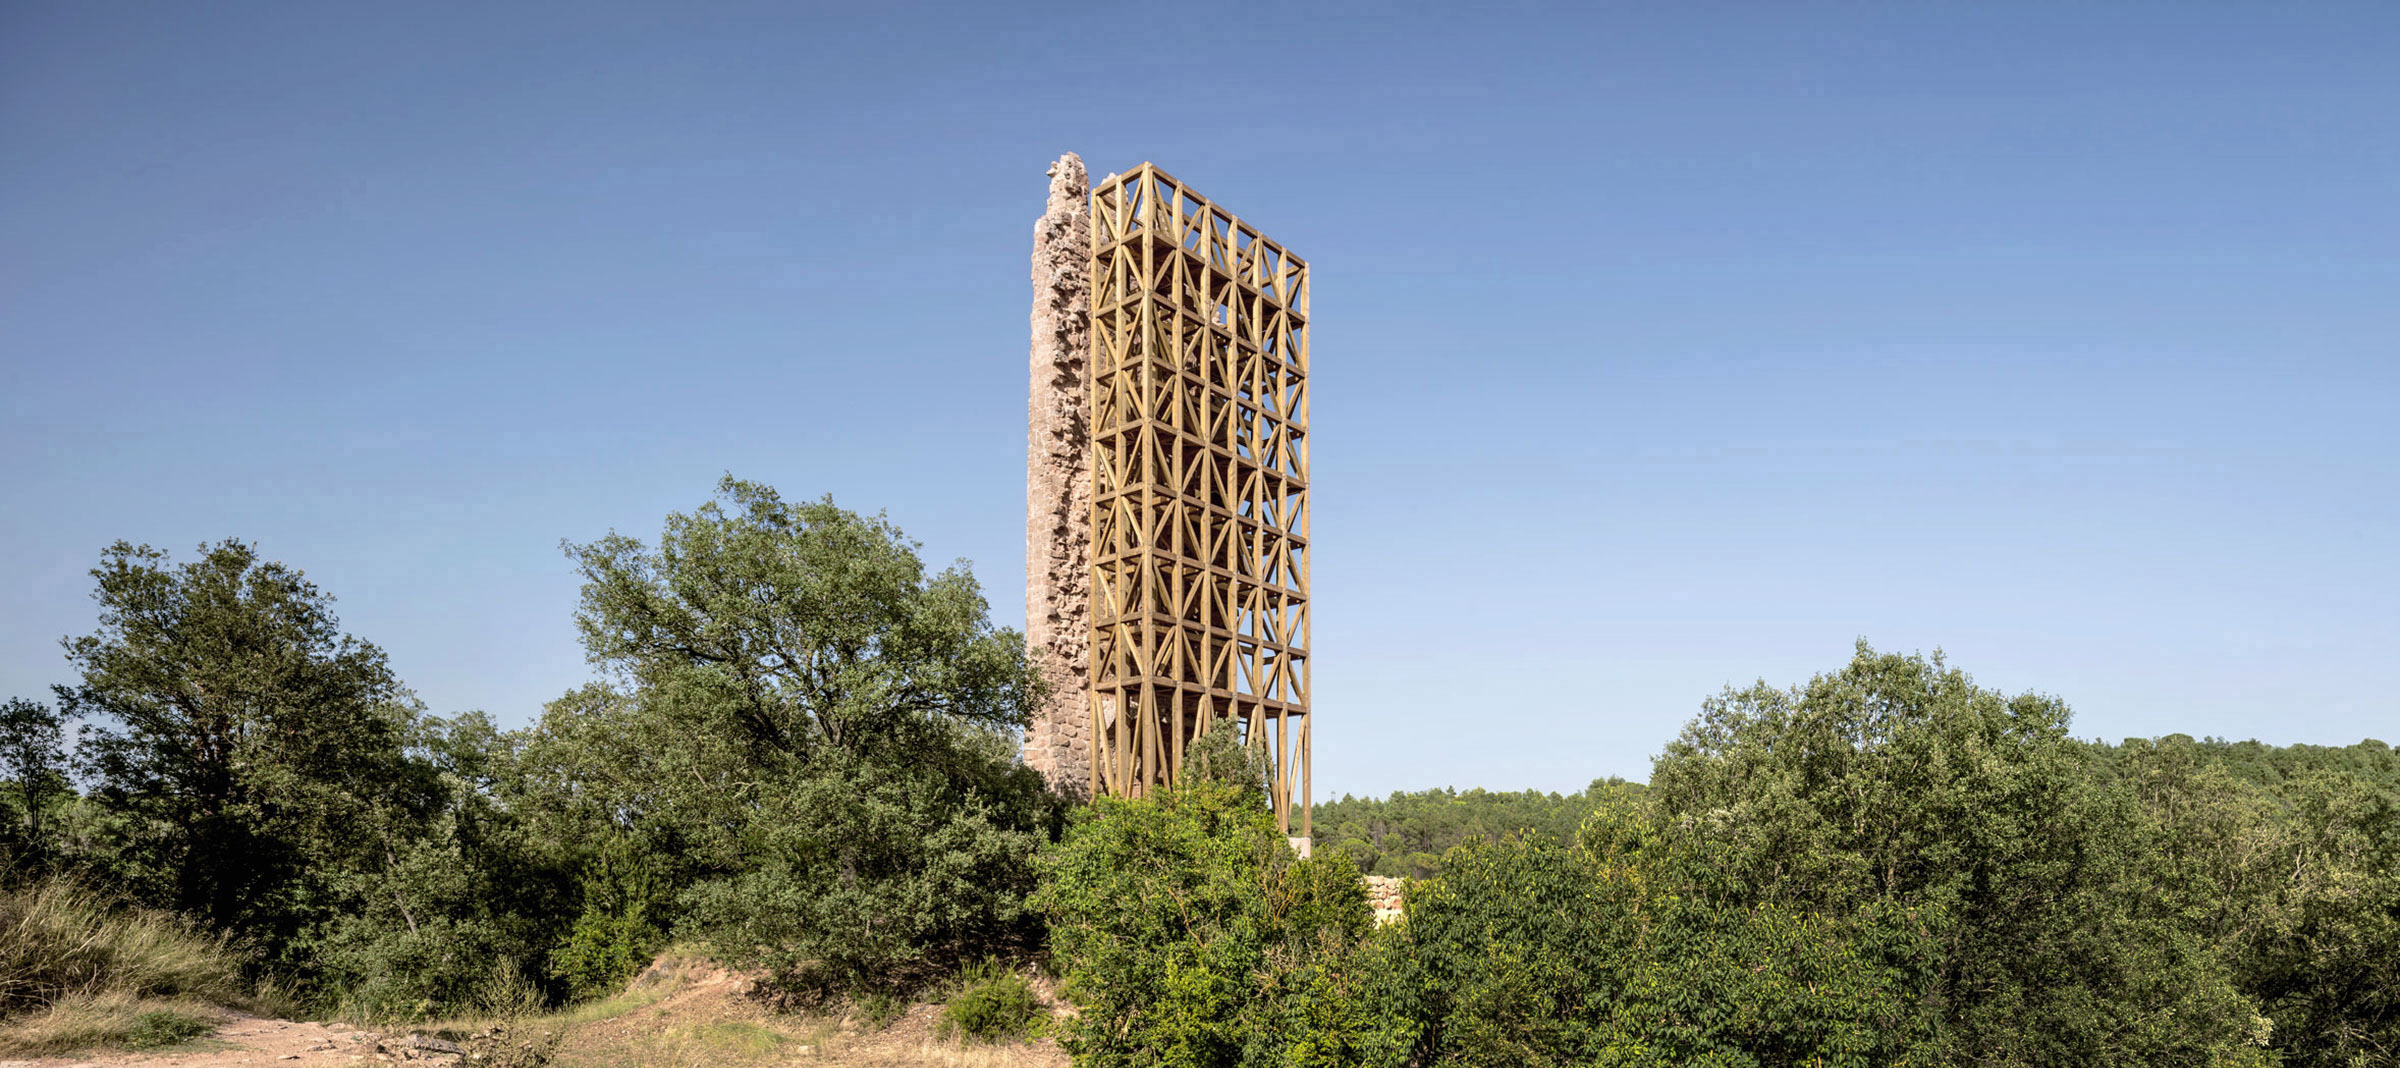 Wooden tower and trees